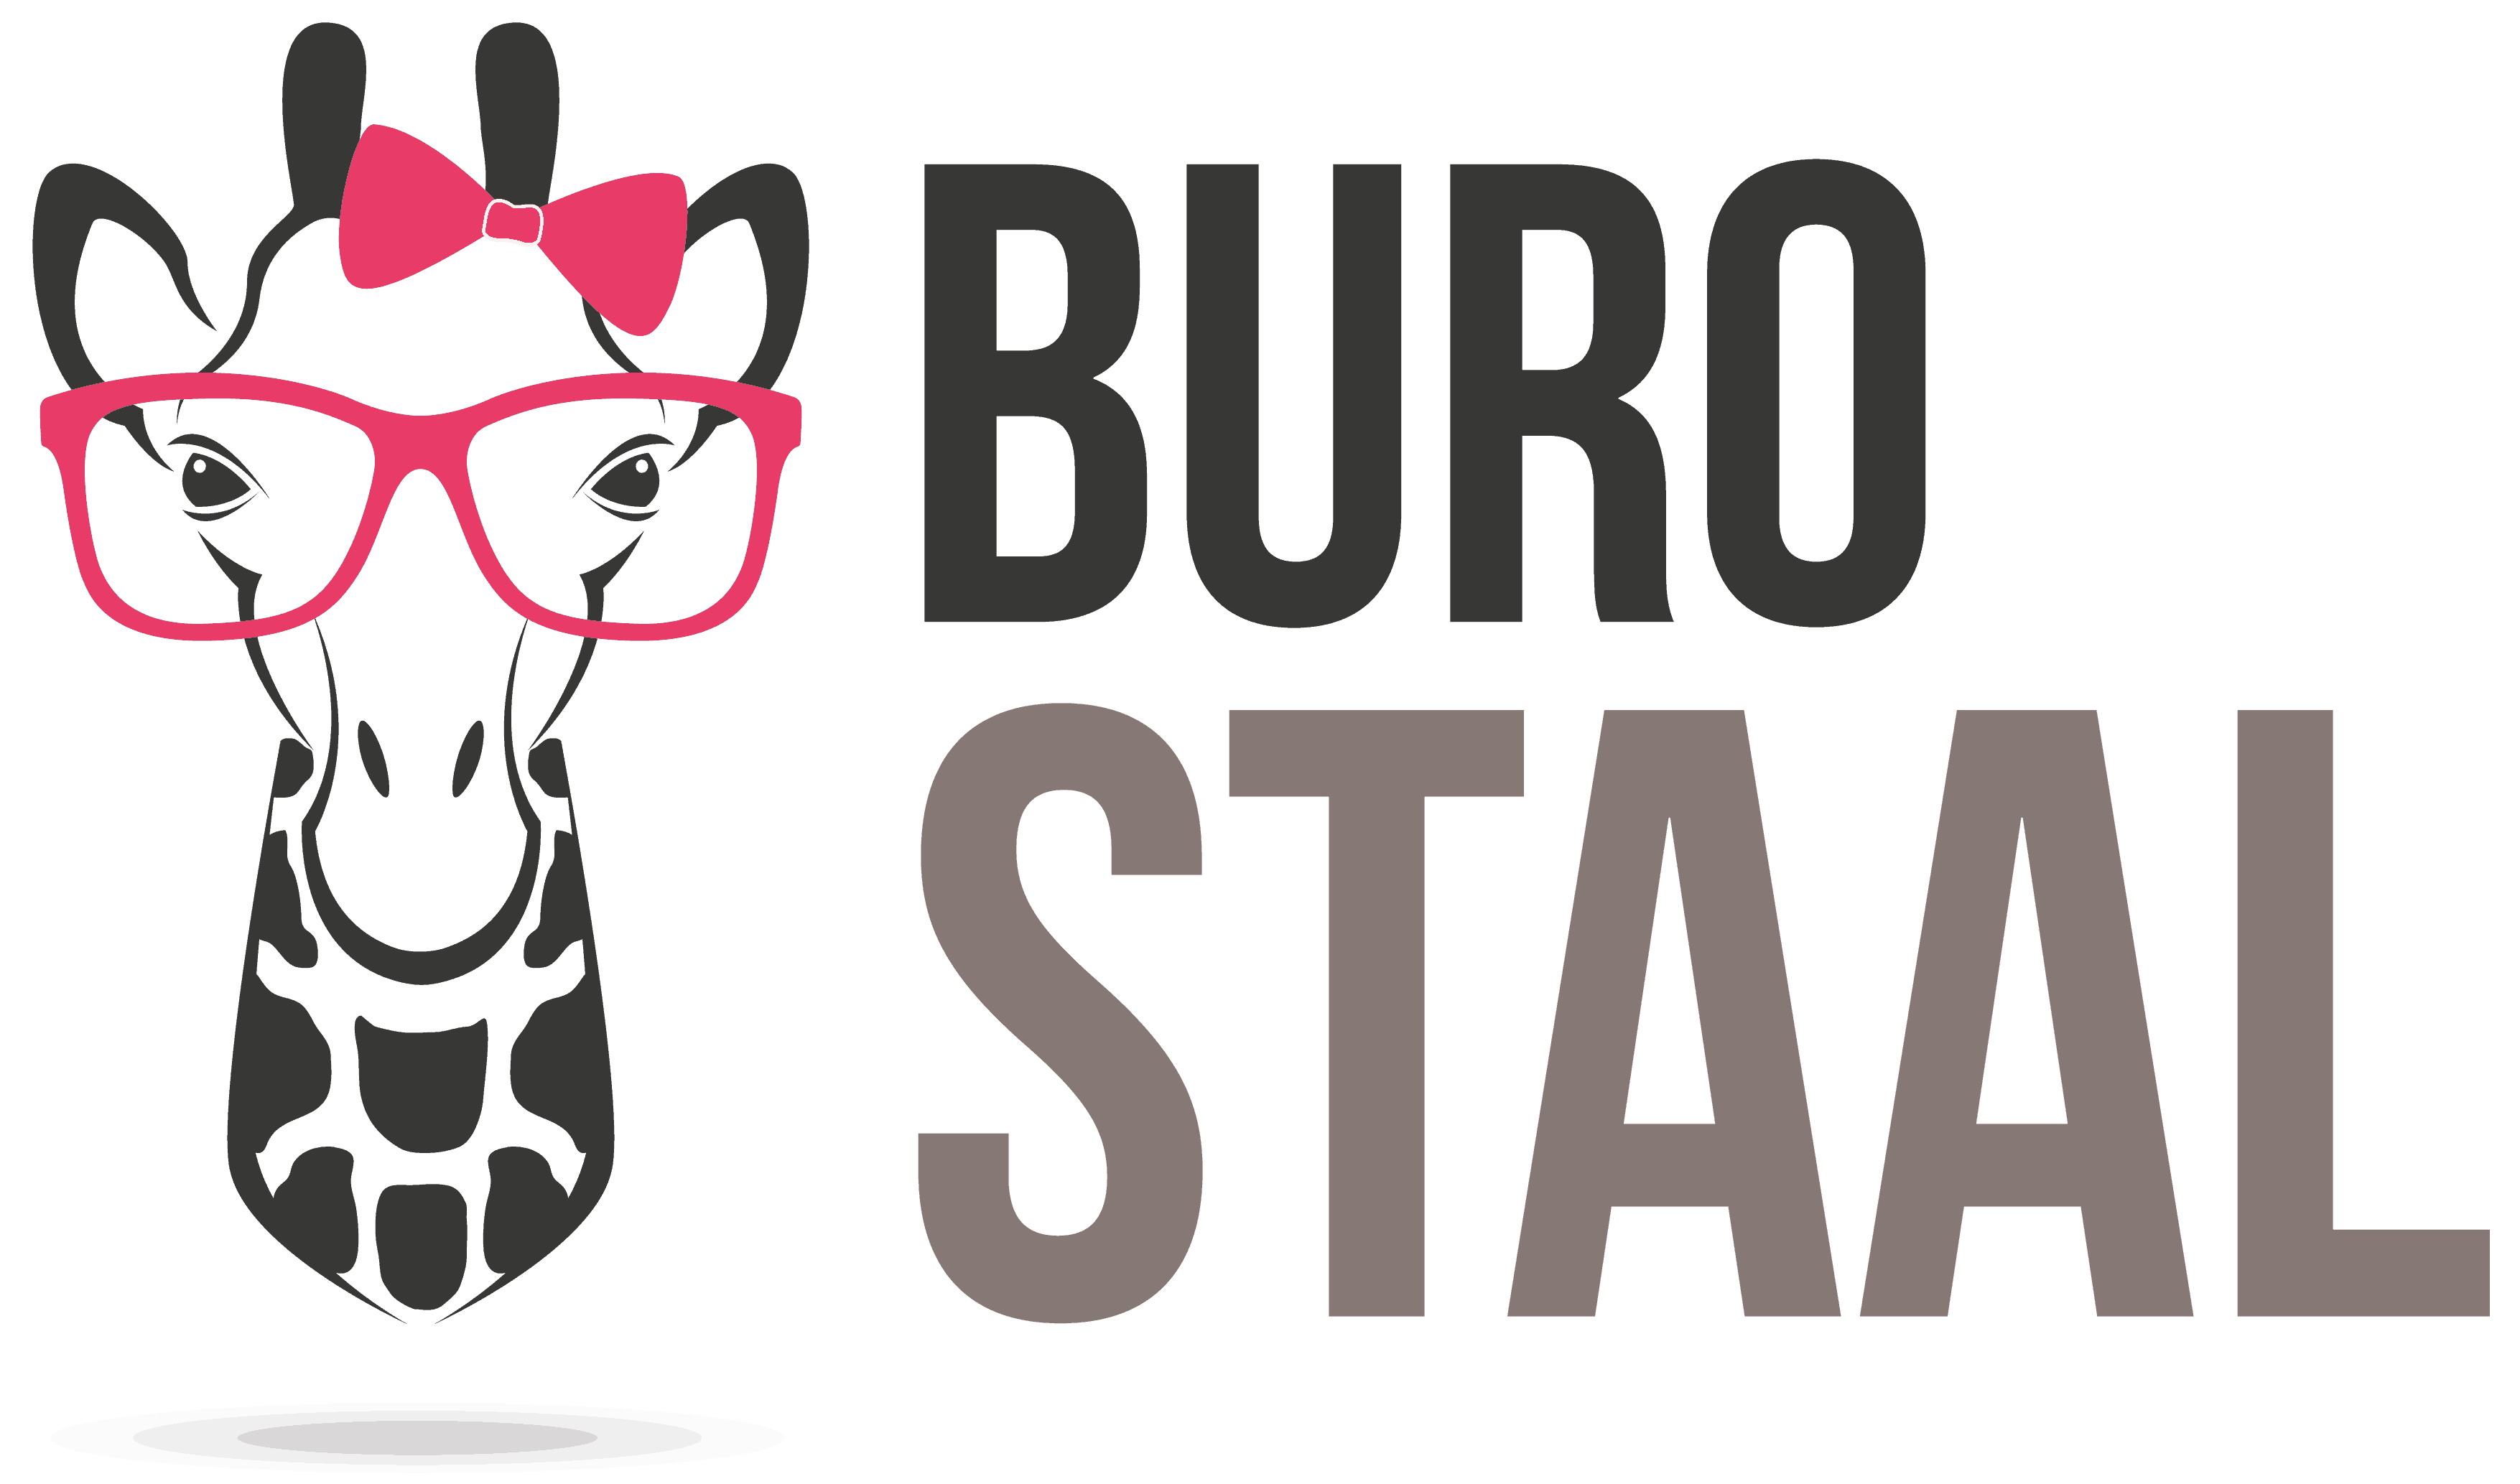 Buro Staal